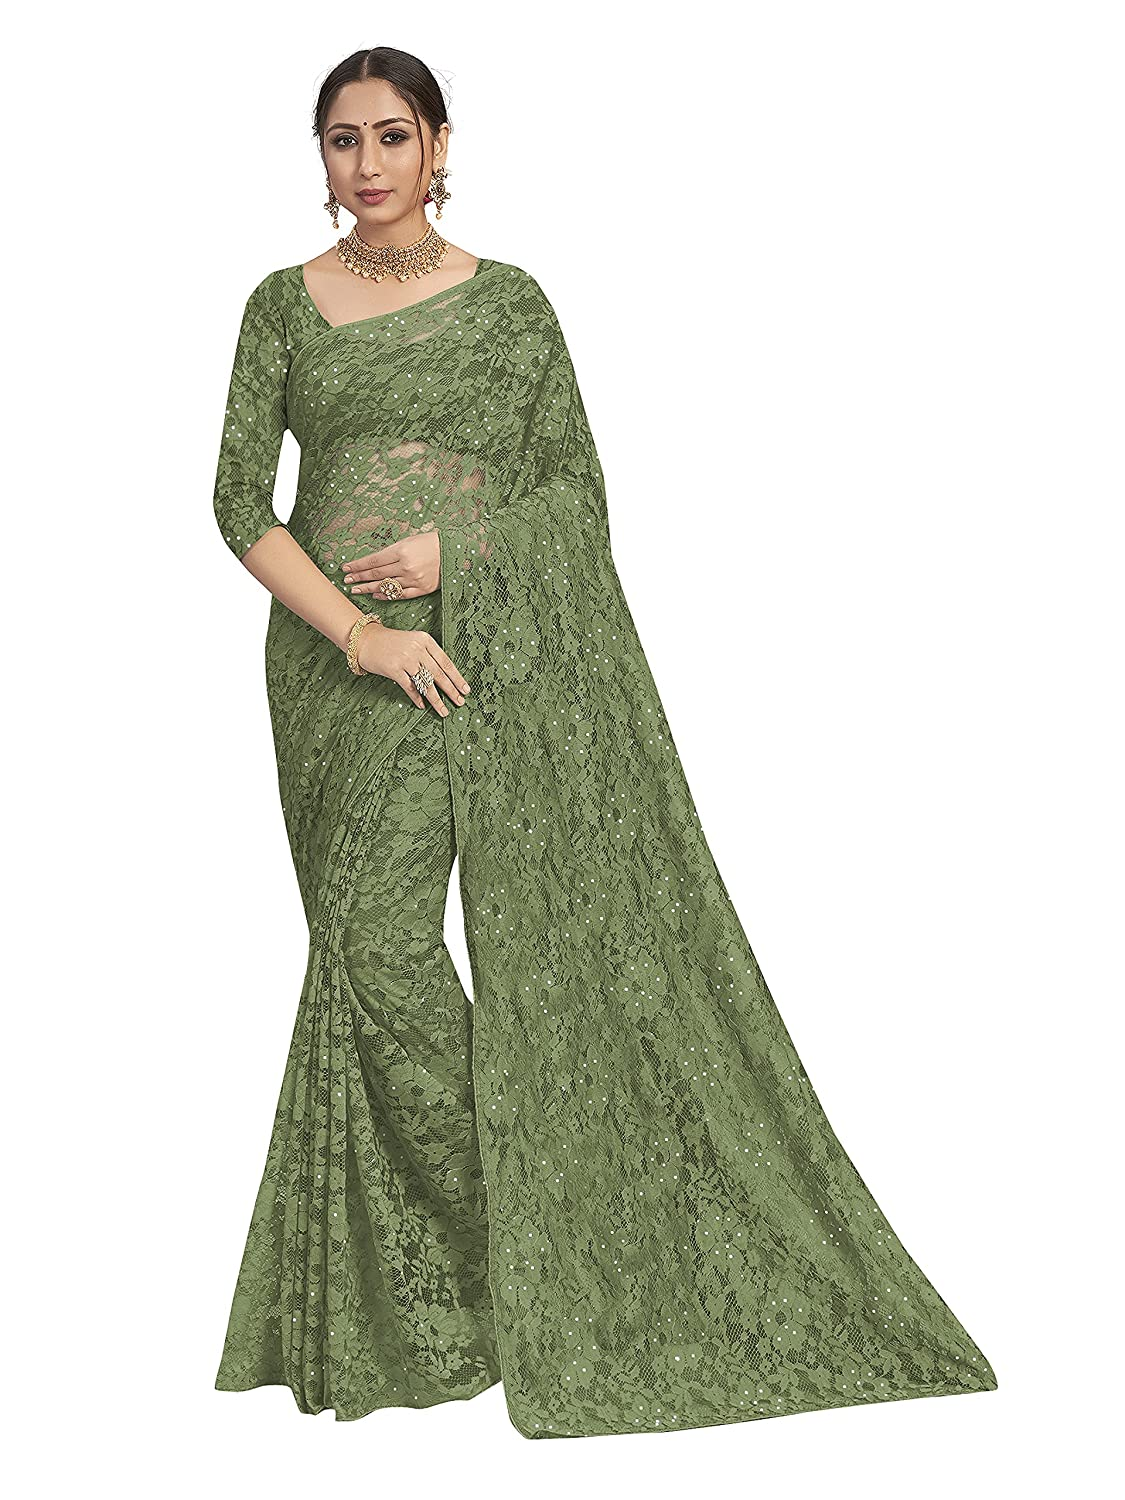 POONAM TEXTILE | Women's Light Green Knit Brasso Saree With Blouse Piece